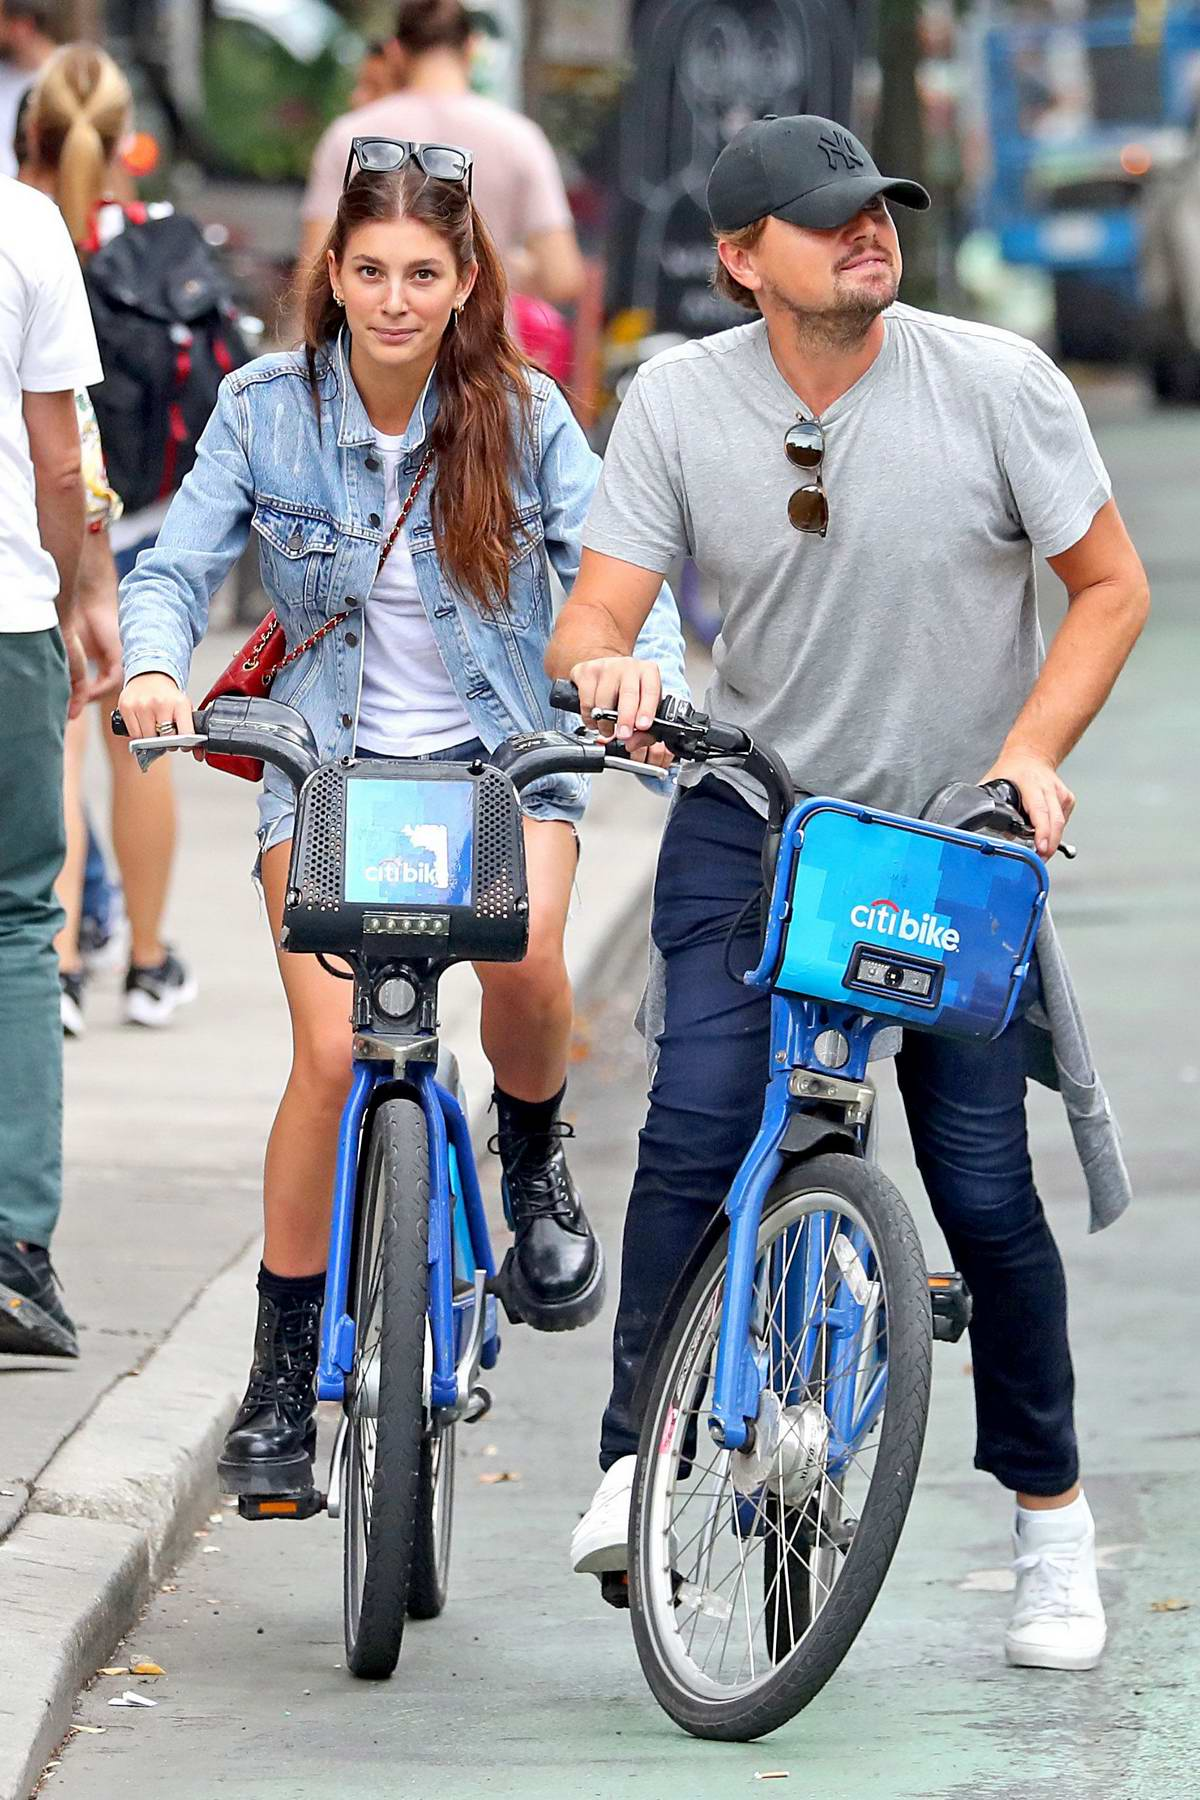 Camila Morrone and Leonardo DiCaprio go for a bike ride followed by a hand in hand stroll in New York City